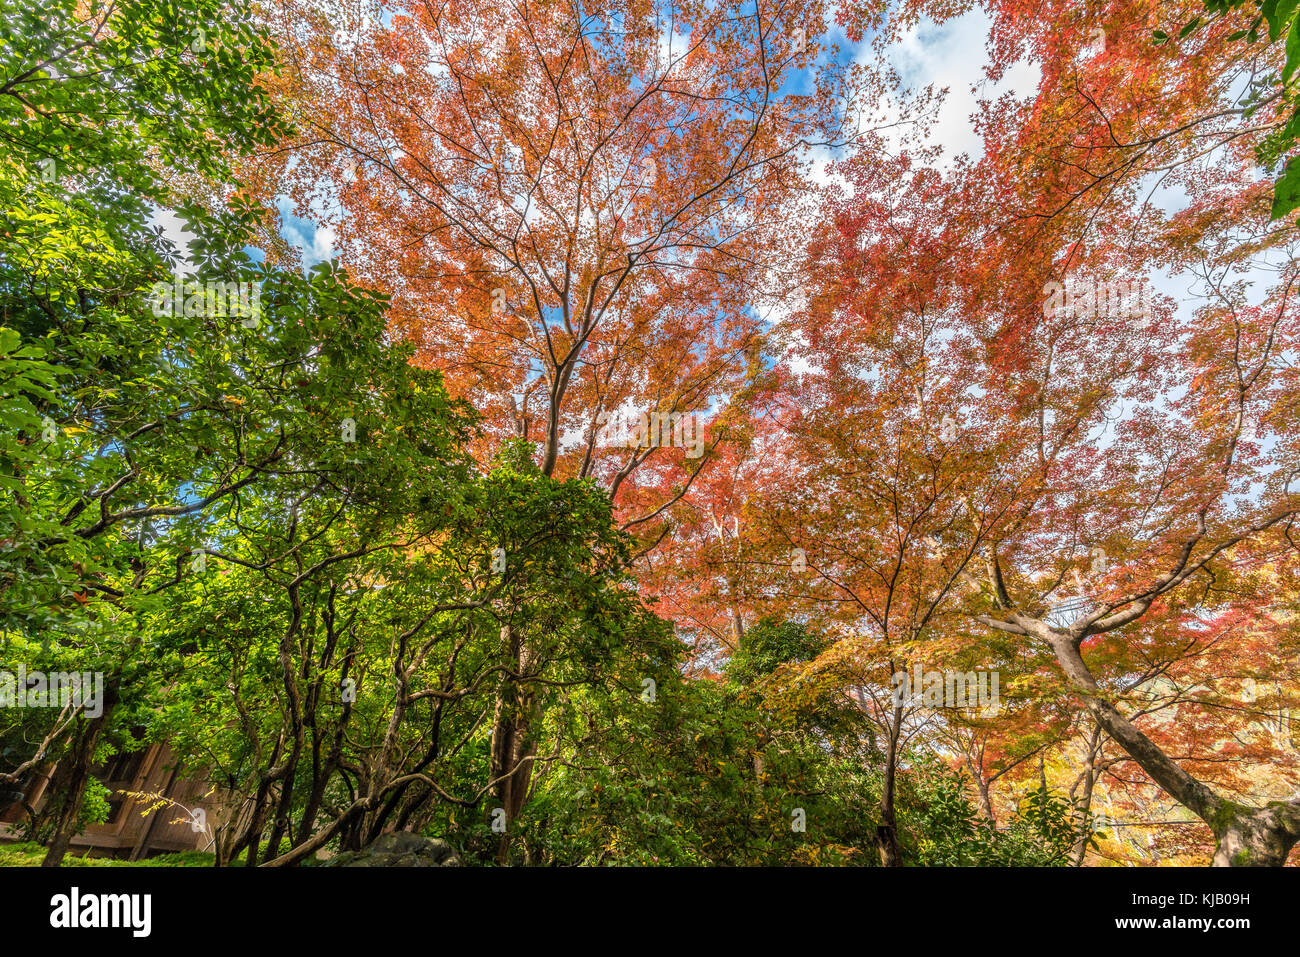 Momiji (Maple tree) Autnum leaves landscape near Ruriko-in Komyo-ji temple. Located in Sakyo ward, Kyoto, Japan - Stock Image